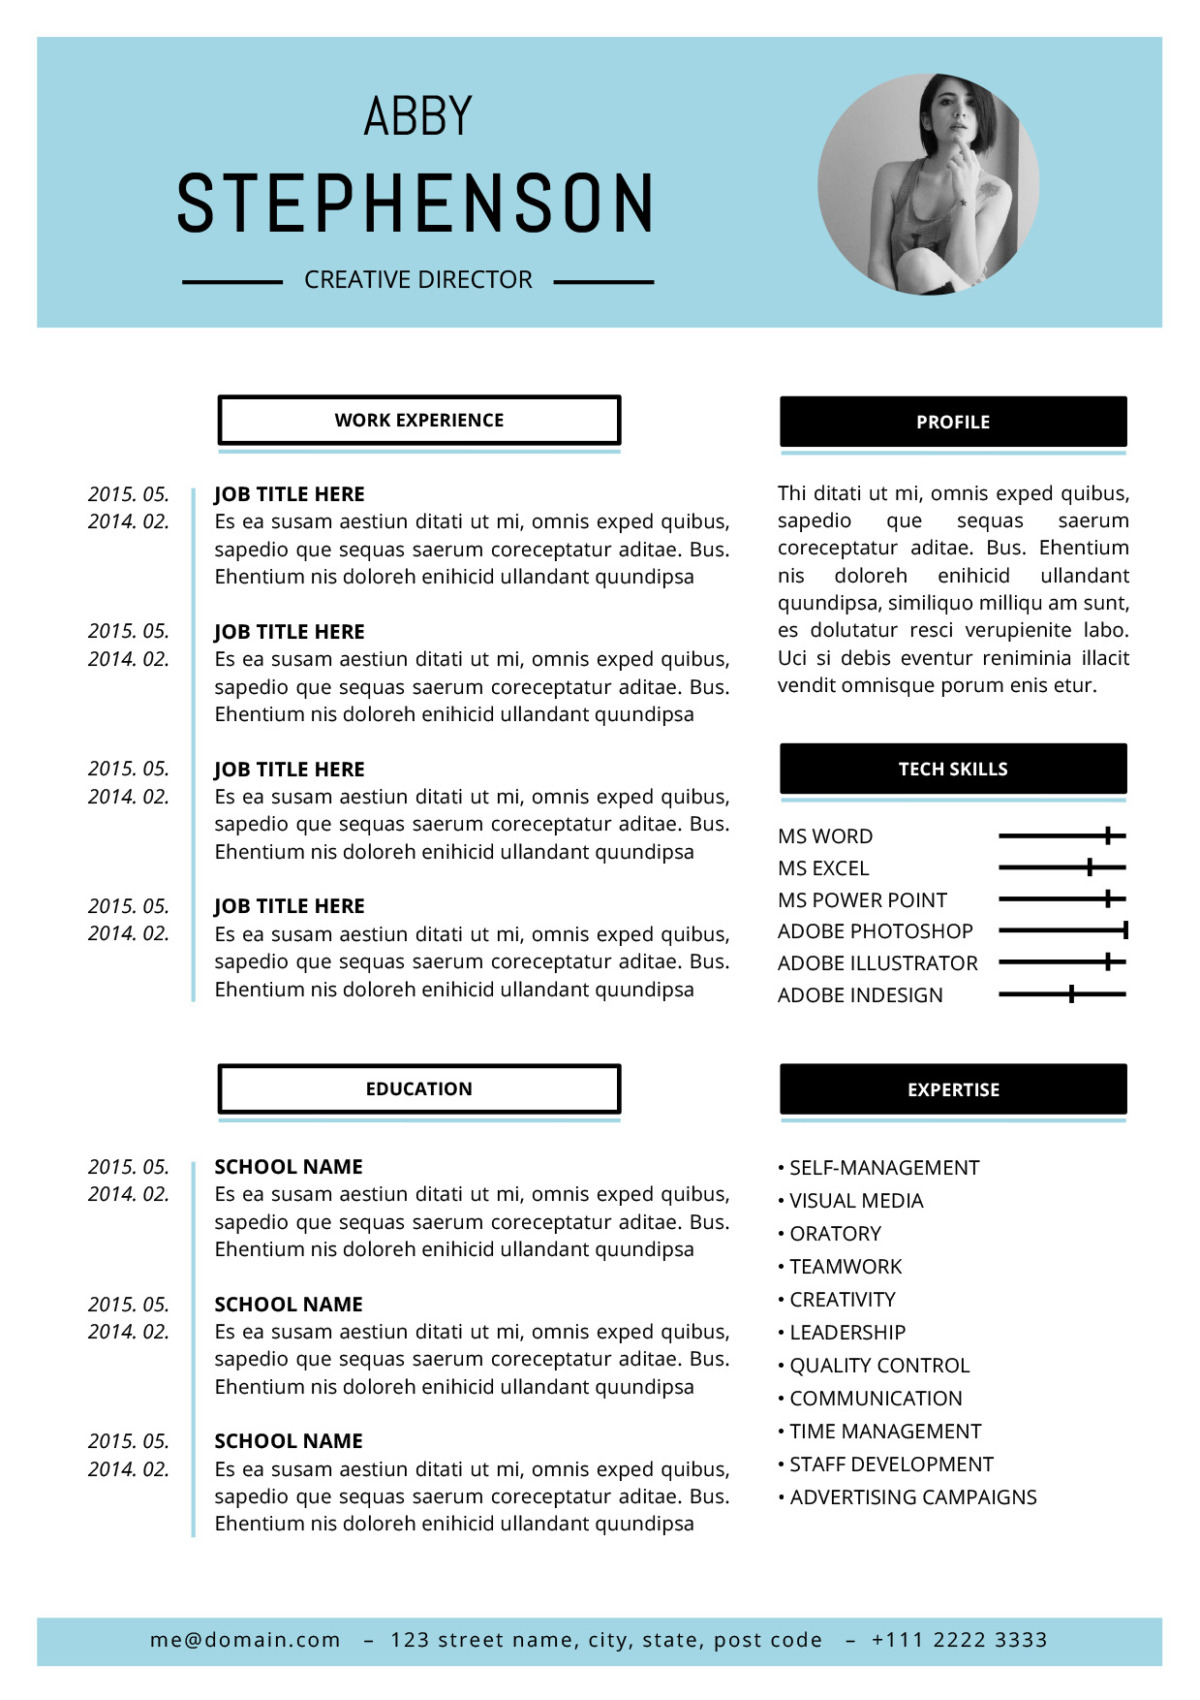 Industrial Engineering Resume Excel The Abby Resume  Minimalist Template Good Fonts For Resume Word with How To Create A College Resume Word Abby Resume Template Cashier Description For Resume Pdf